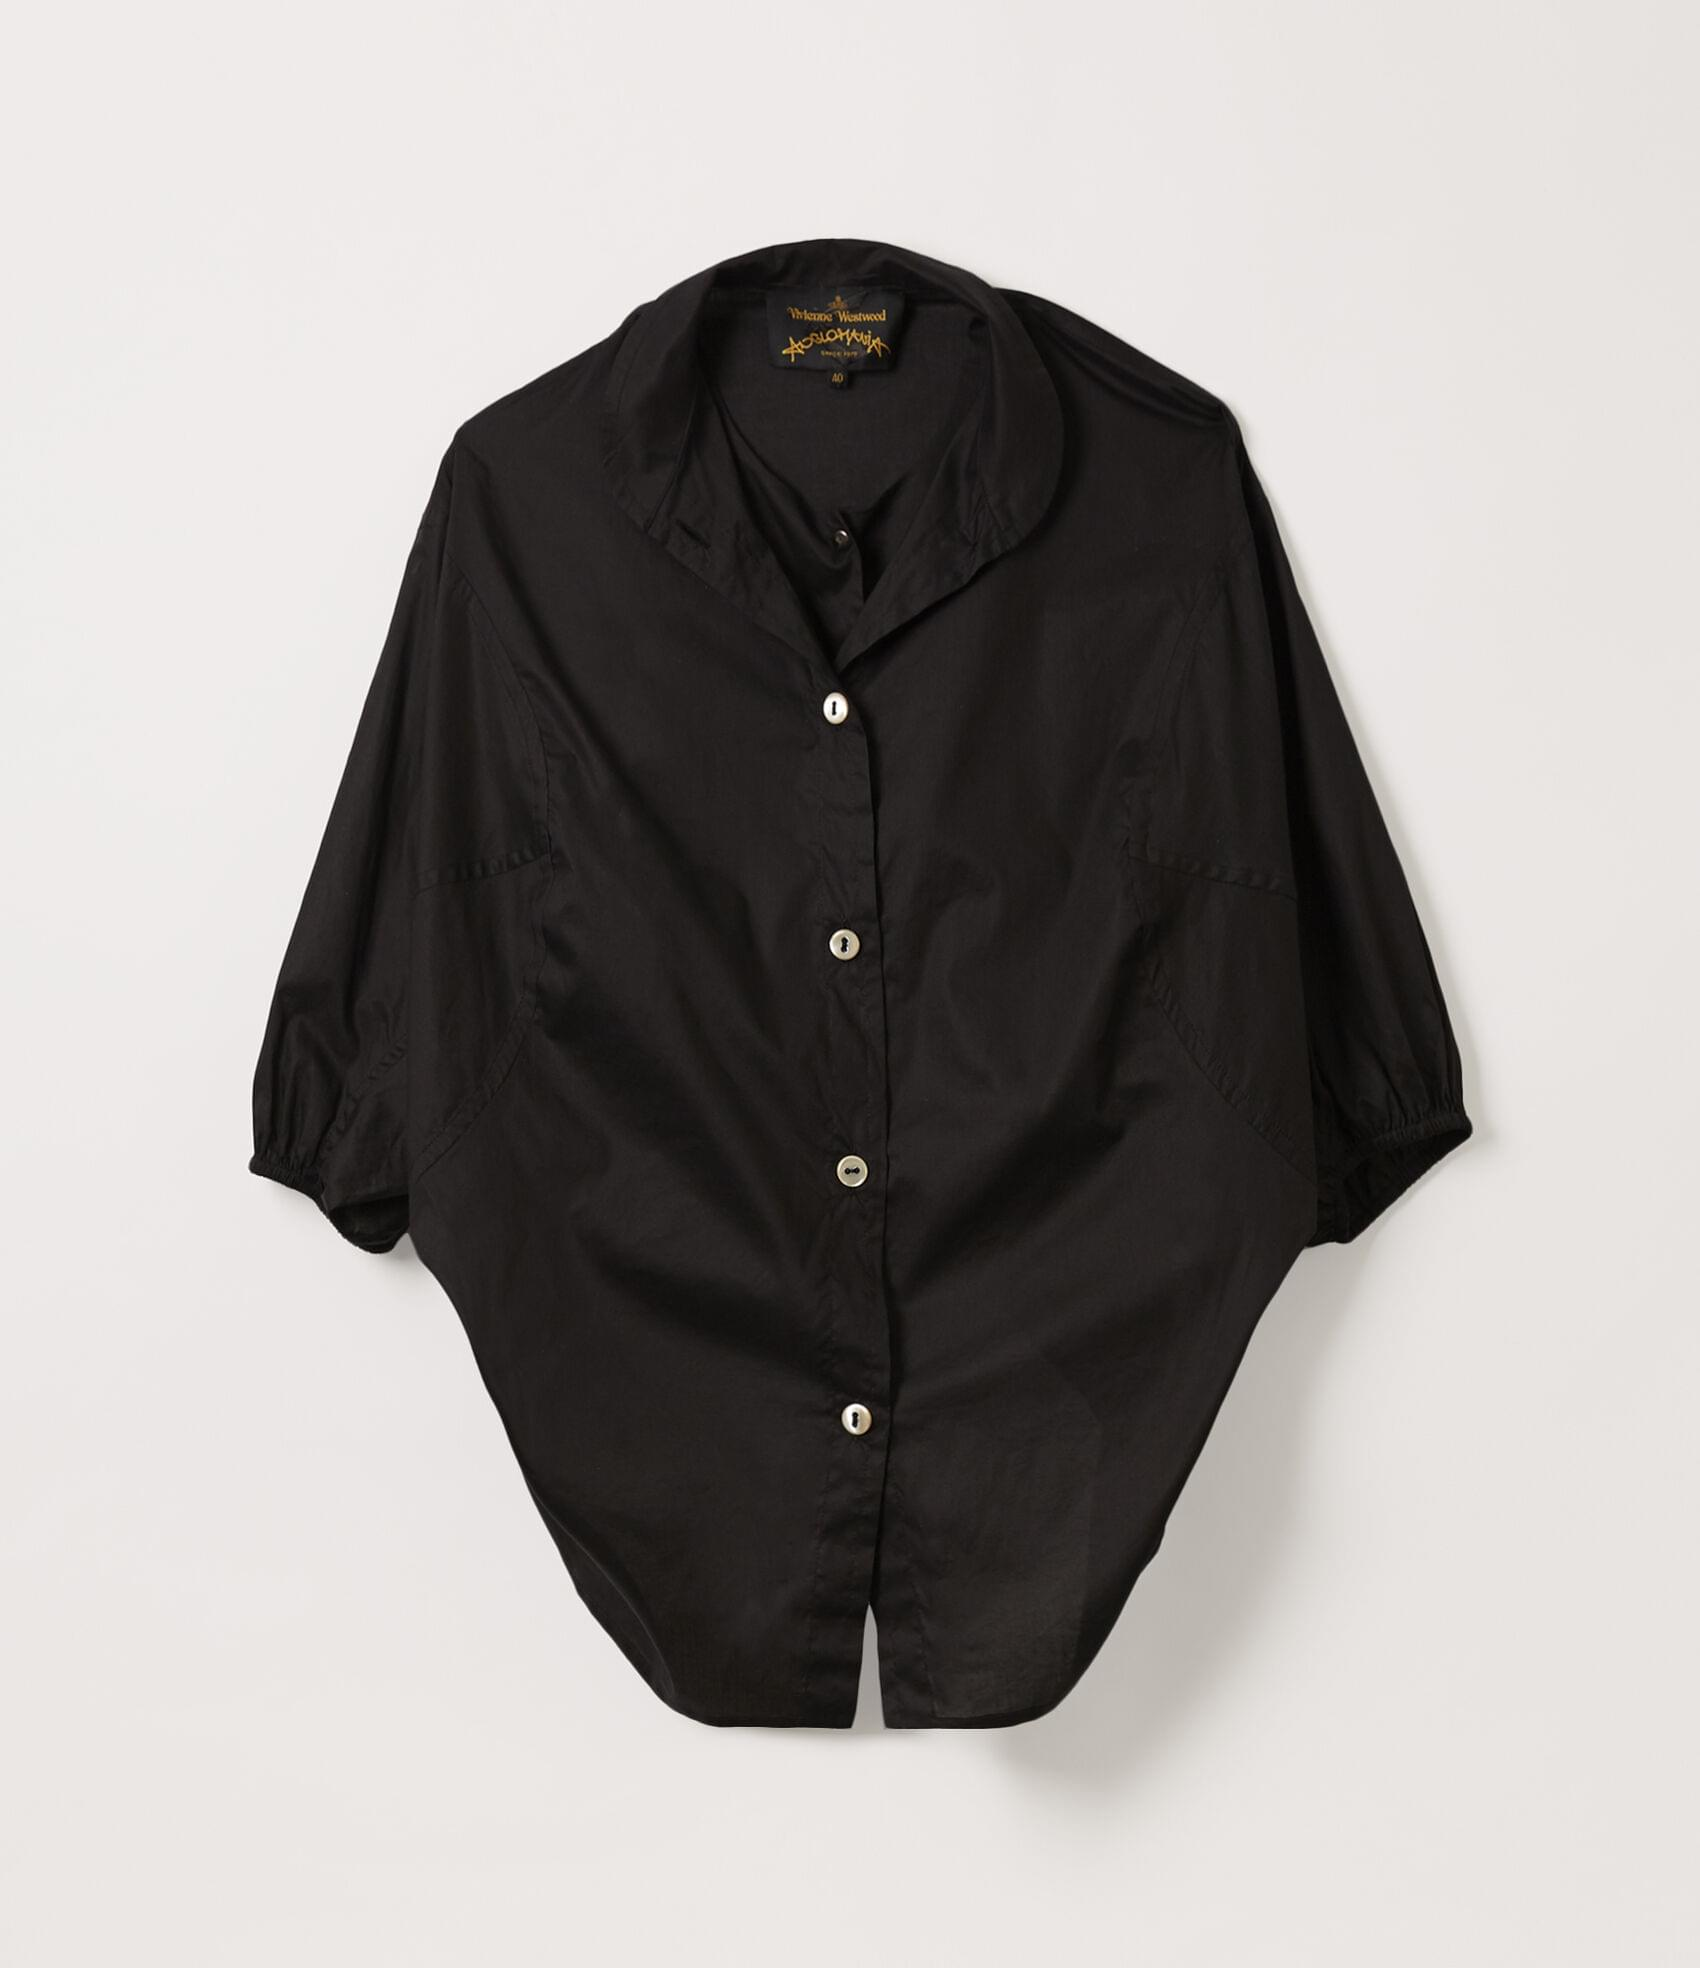 Vivienne Westwood NYMPH SHIRT BLACK